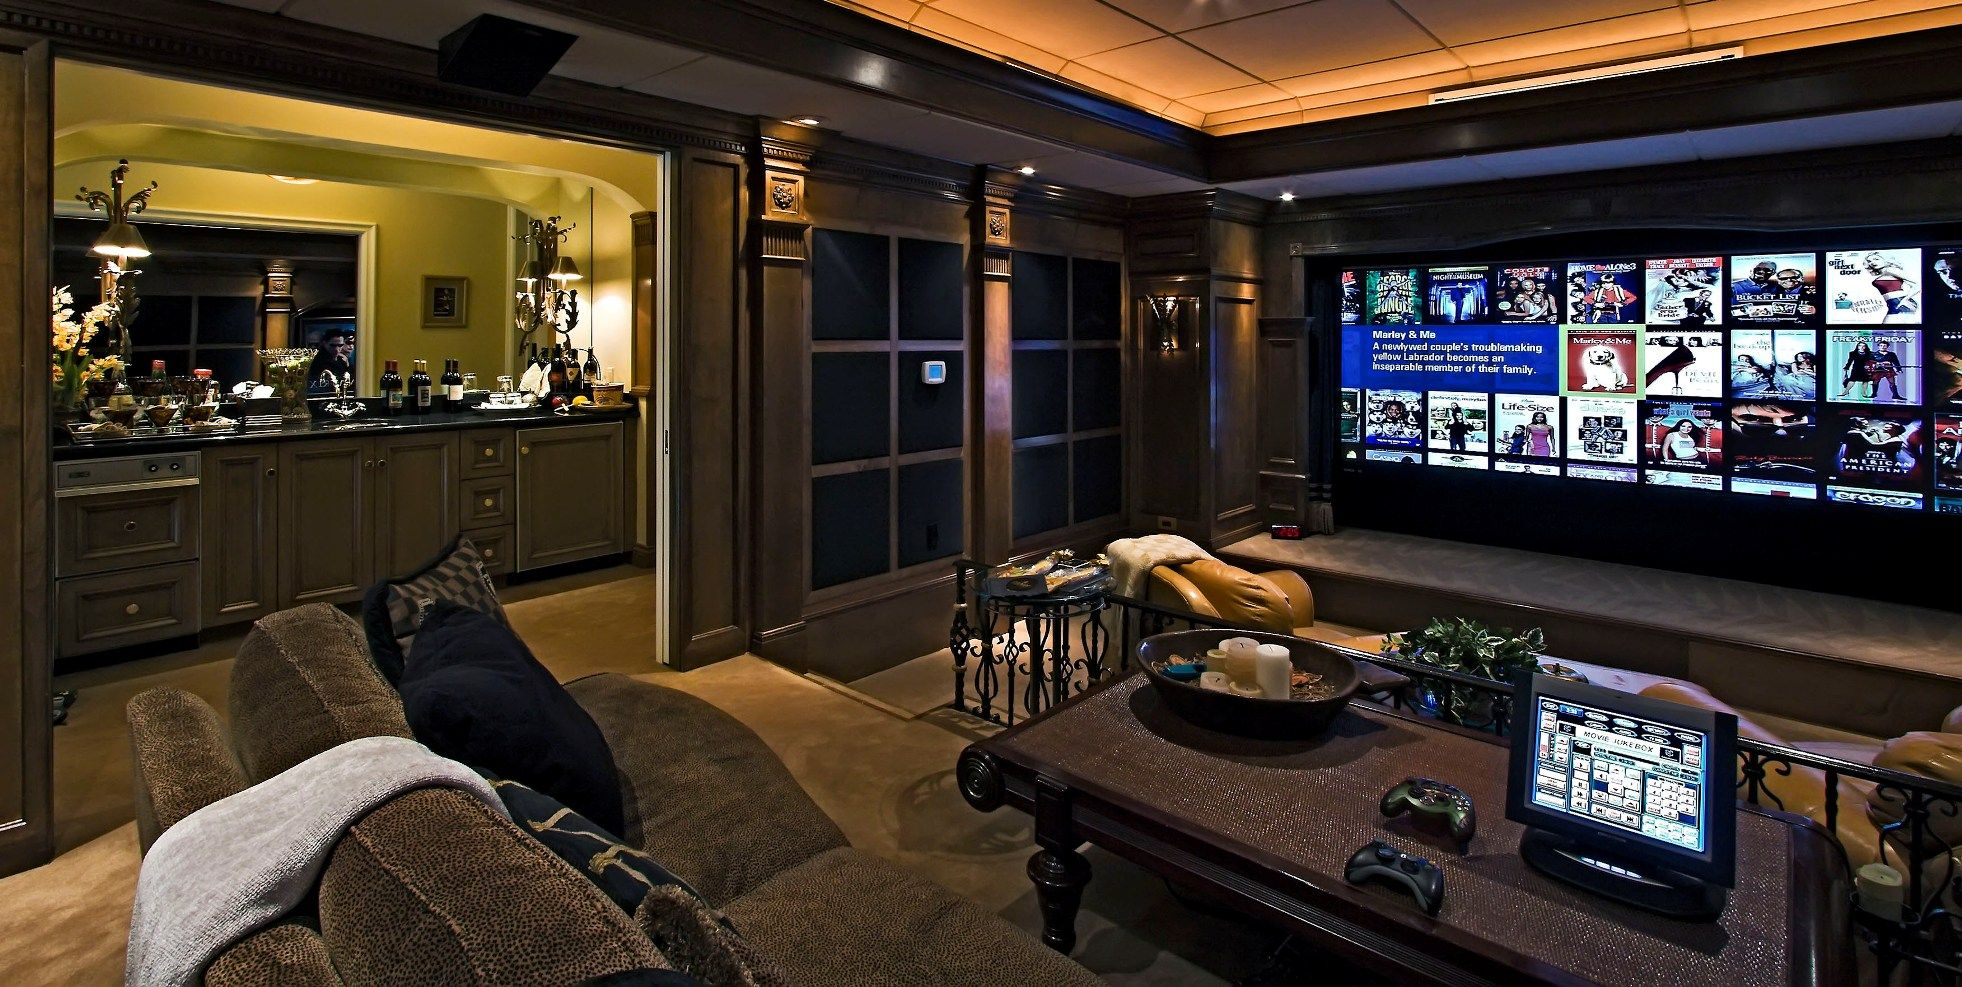 Home Theater Design Ideas best home theater design ideas remodel pictures houzz Home Decorating Ideas Home Theater Decor Ideas Home Theater Home Theater Dcor